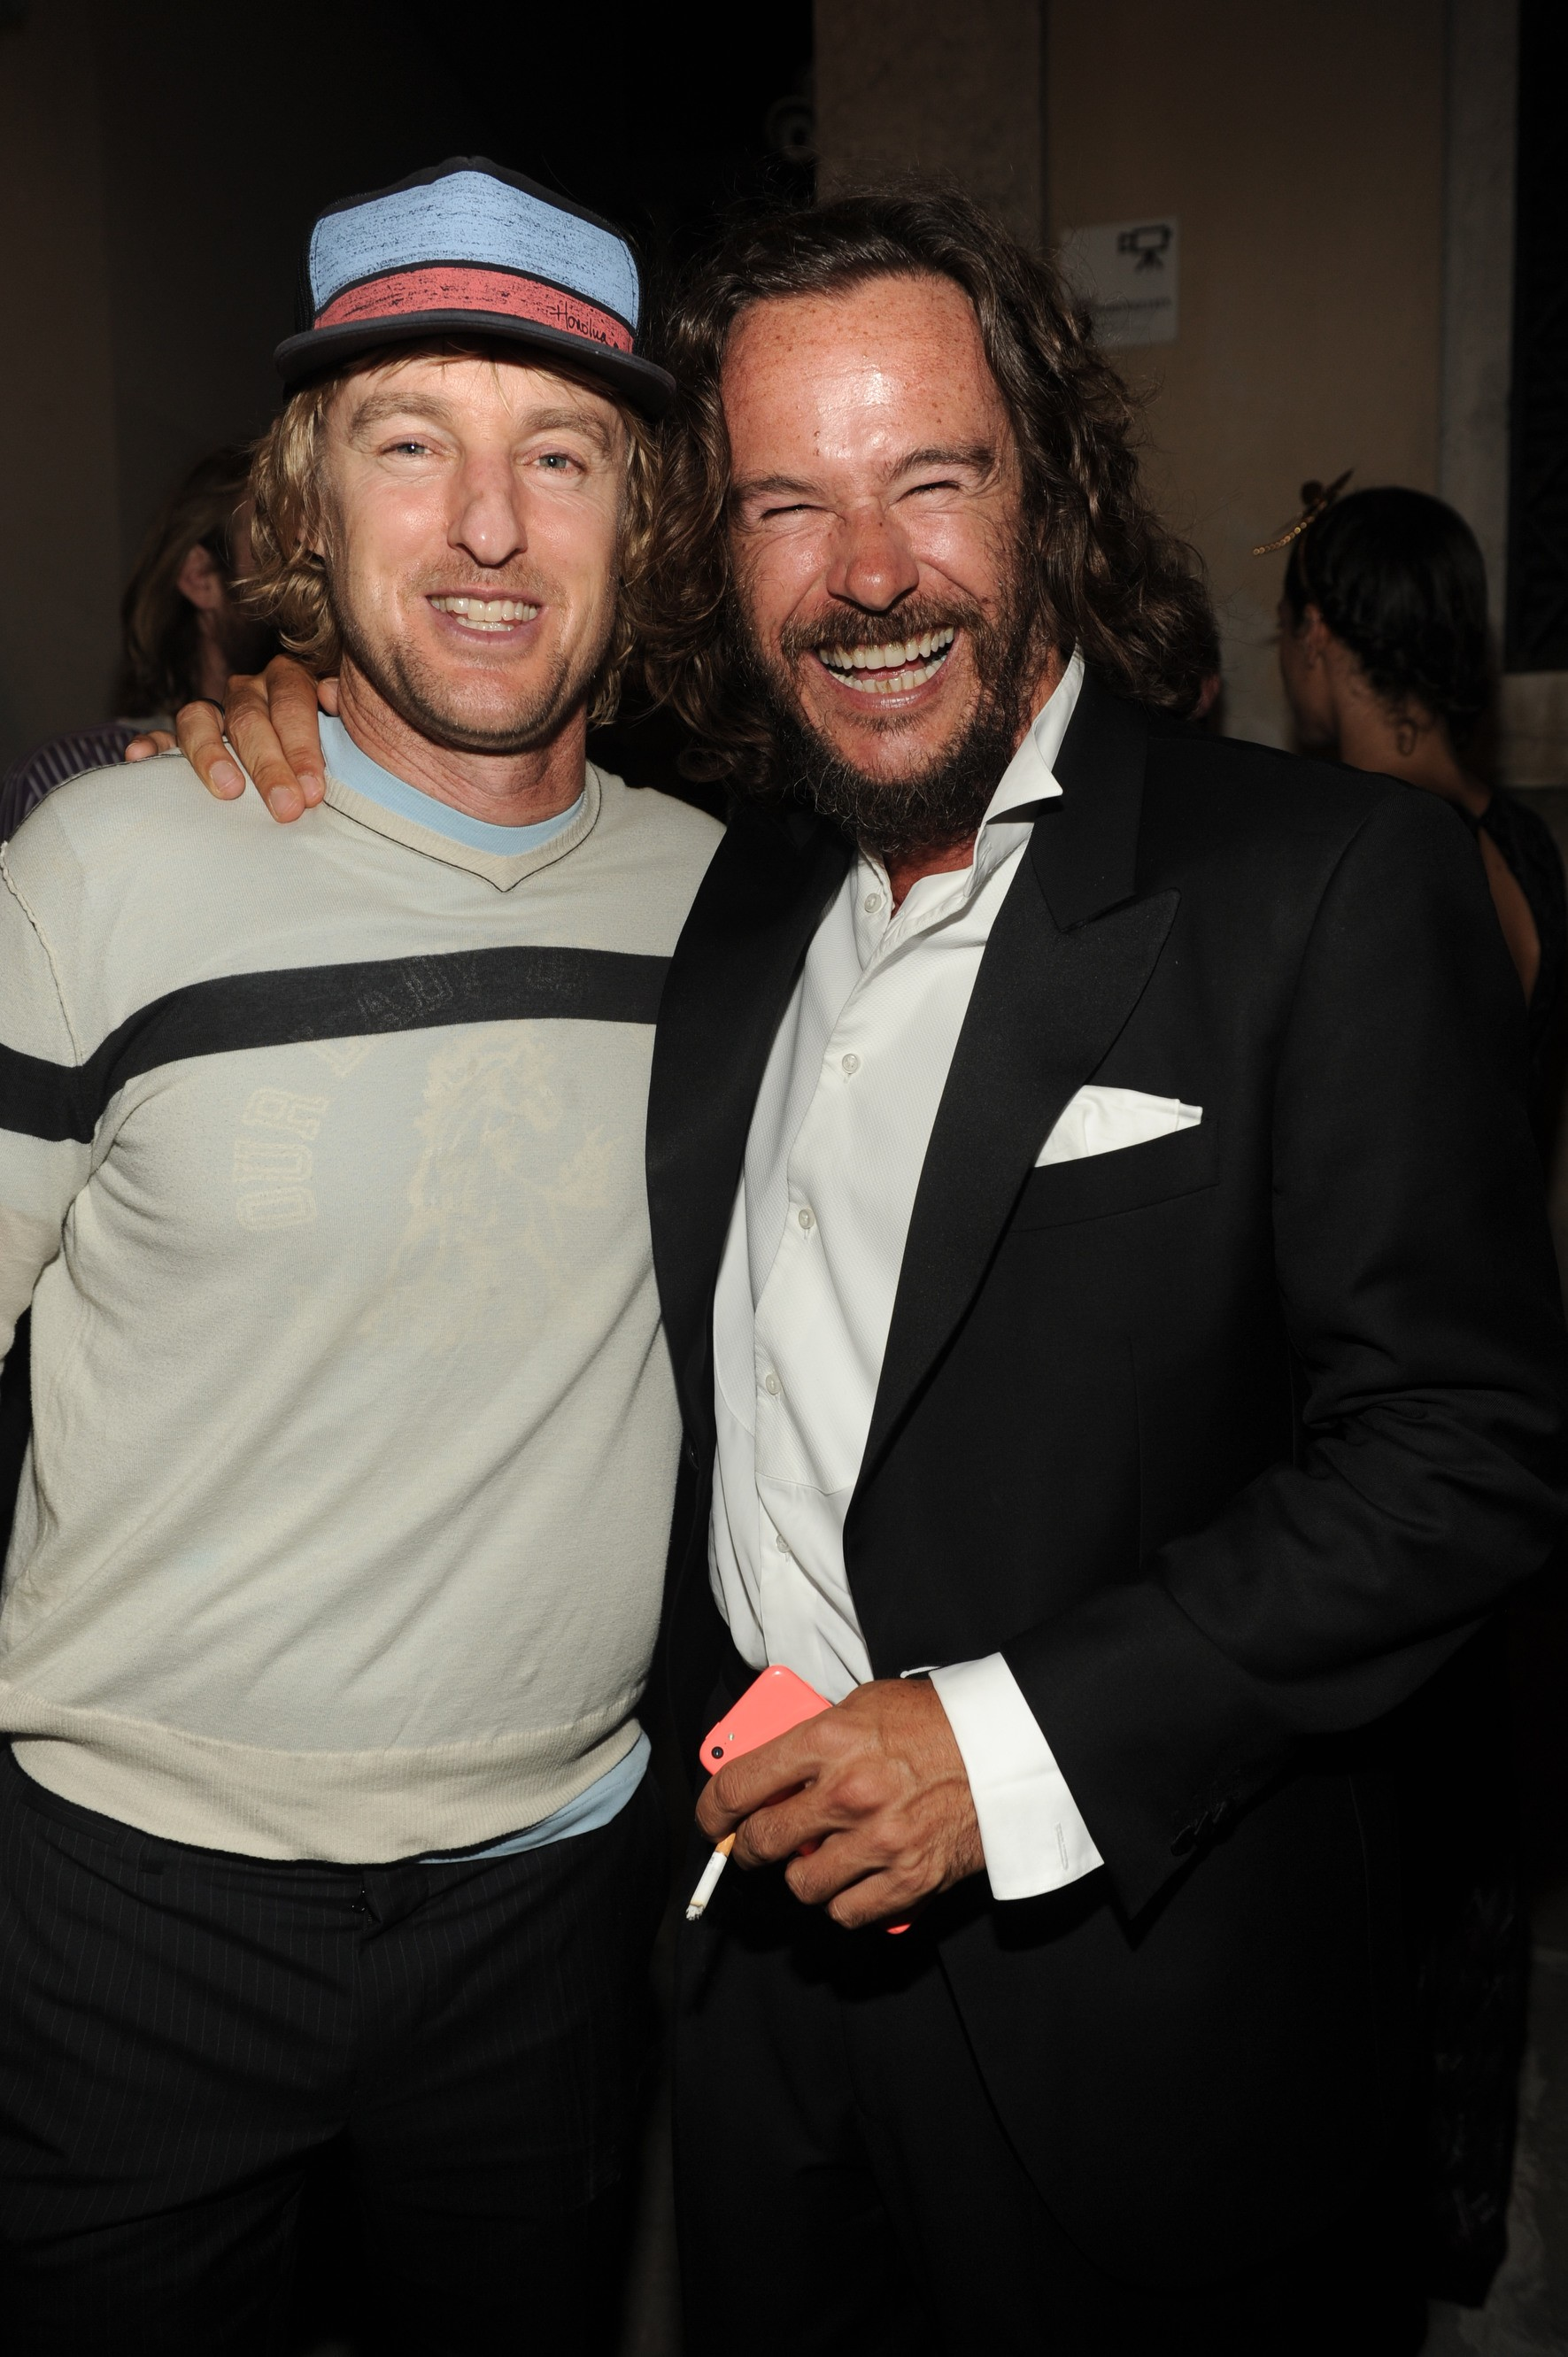 Owen Wilson and The PalazzinaG owner Emanuele Garosci attend The PalazzinaG Hotel's L'Uomo Vogue Dinner & Party sponsored by Chopard, Moët Chandon and Cotril